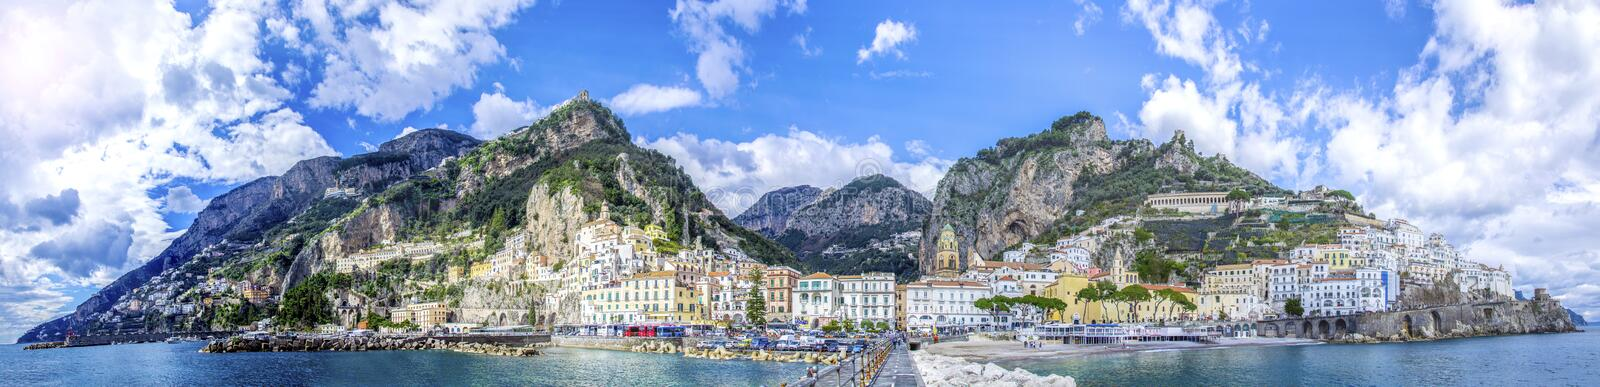 Panoramic view of the town of Amalfi on coast in Italy stock photo